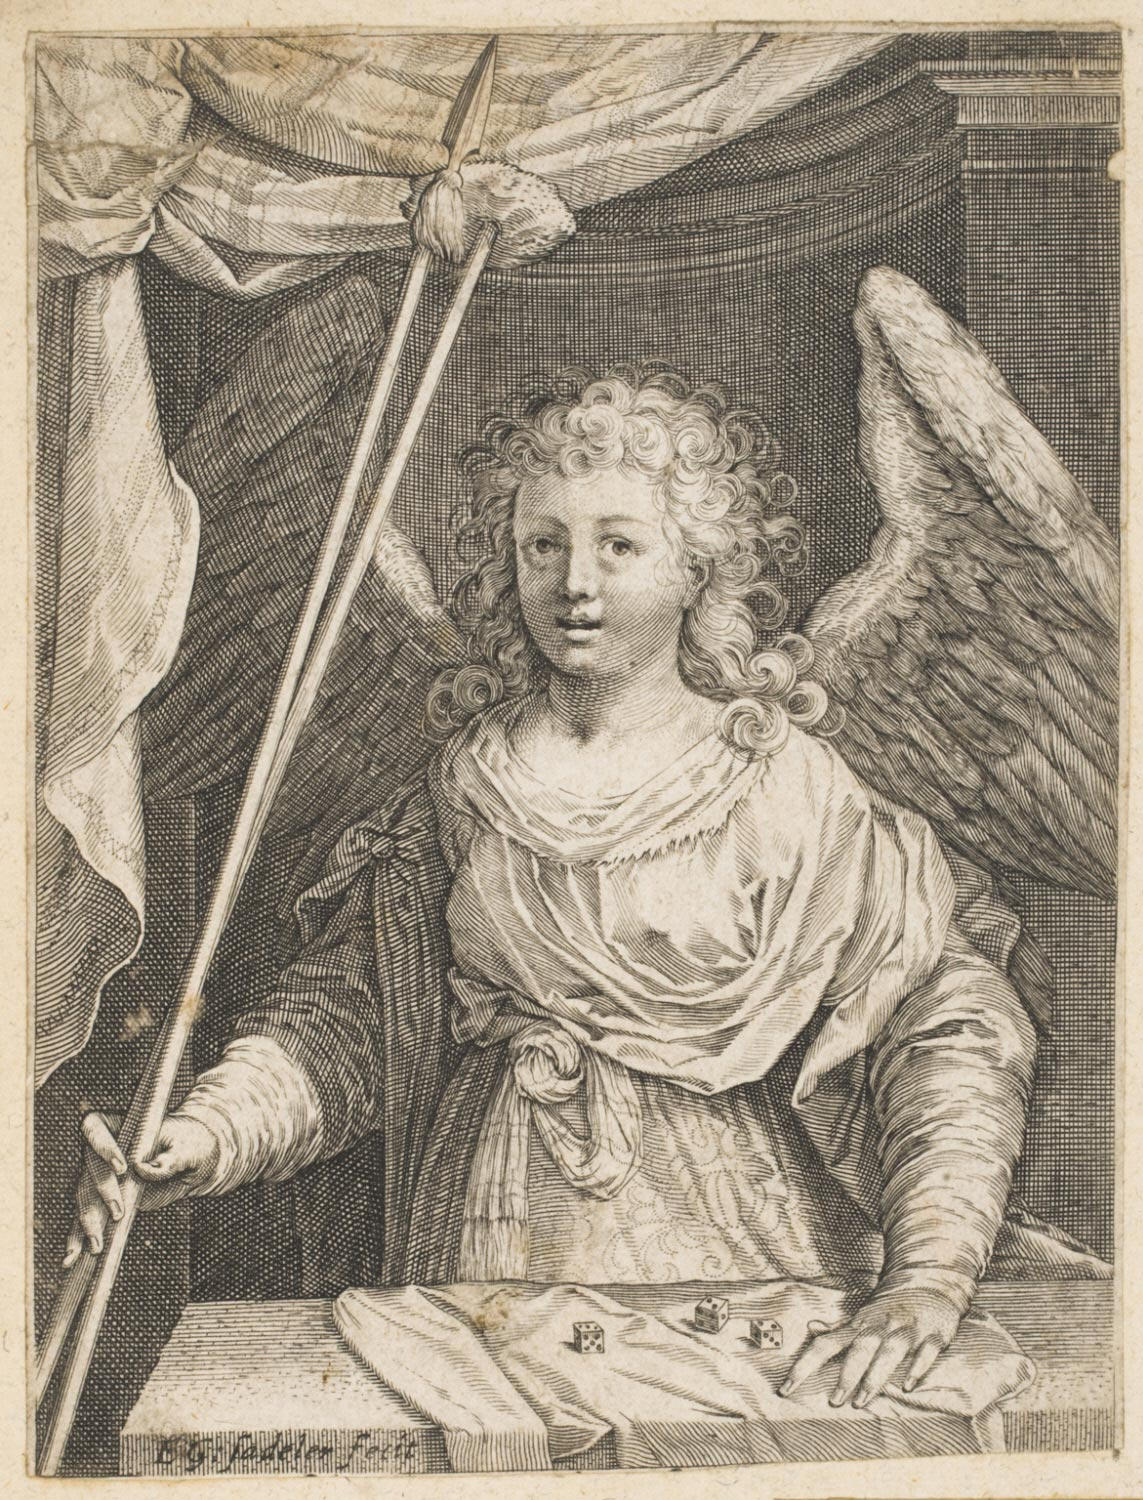 Angel with the Lance, Sponge, and Dice